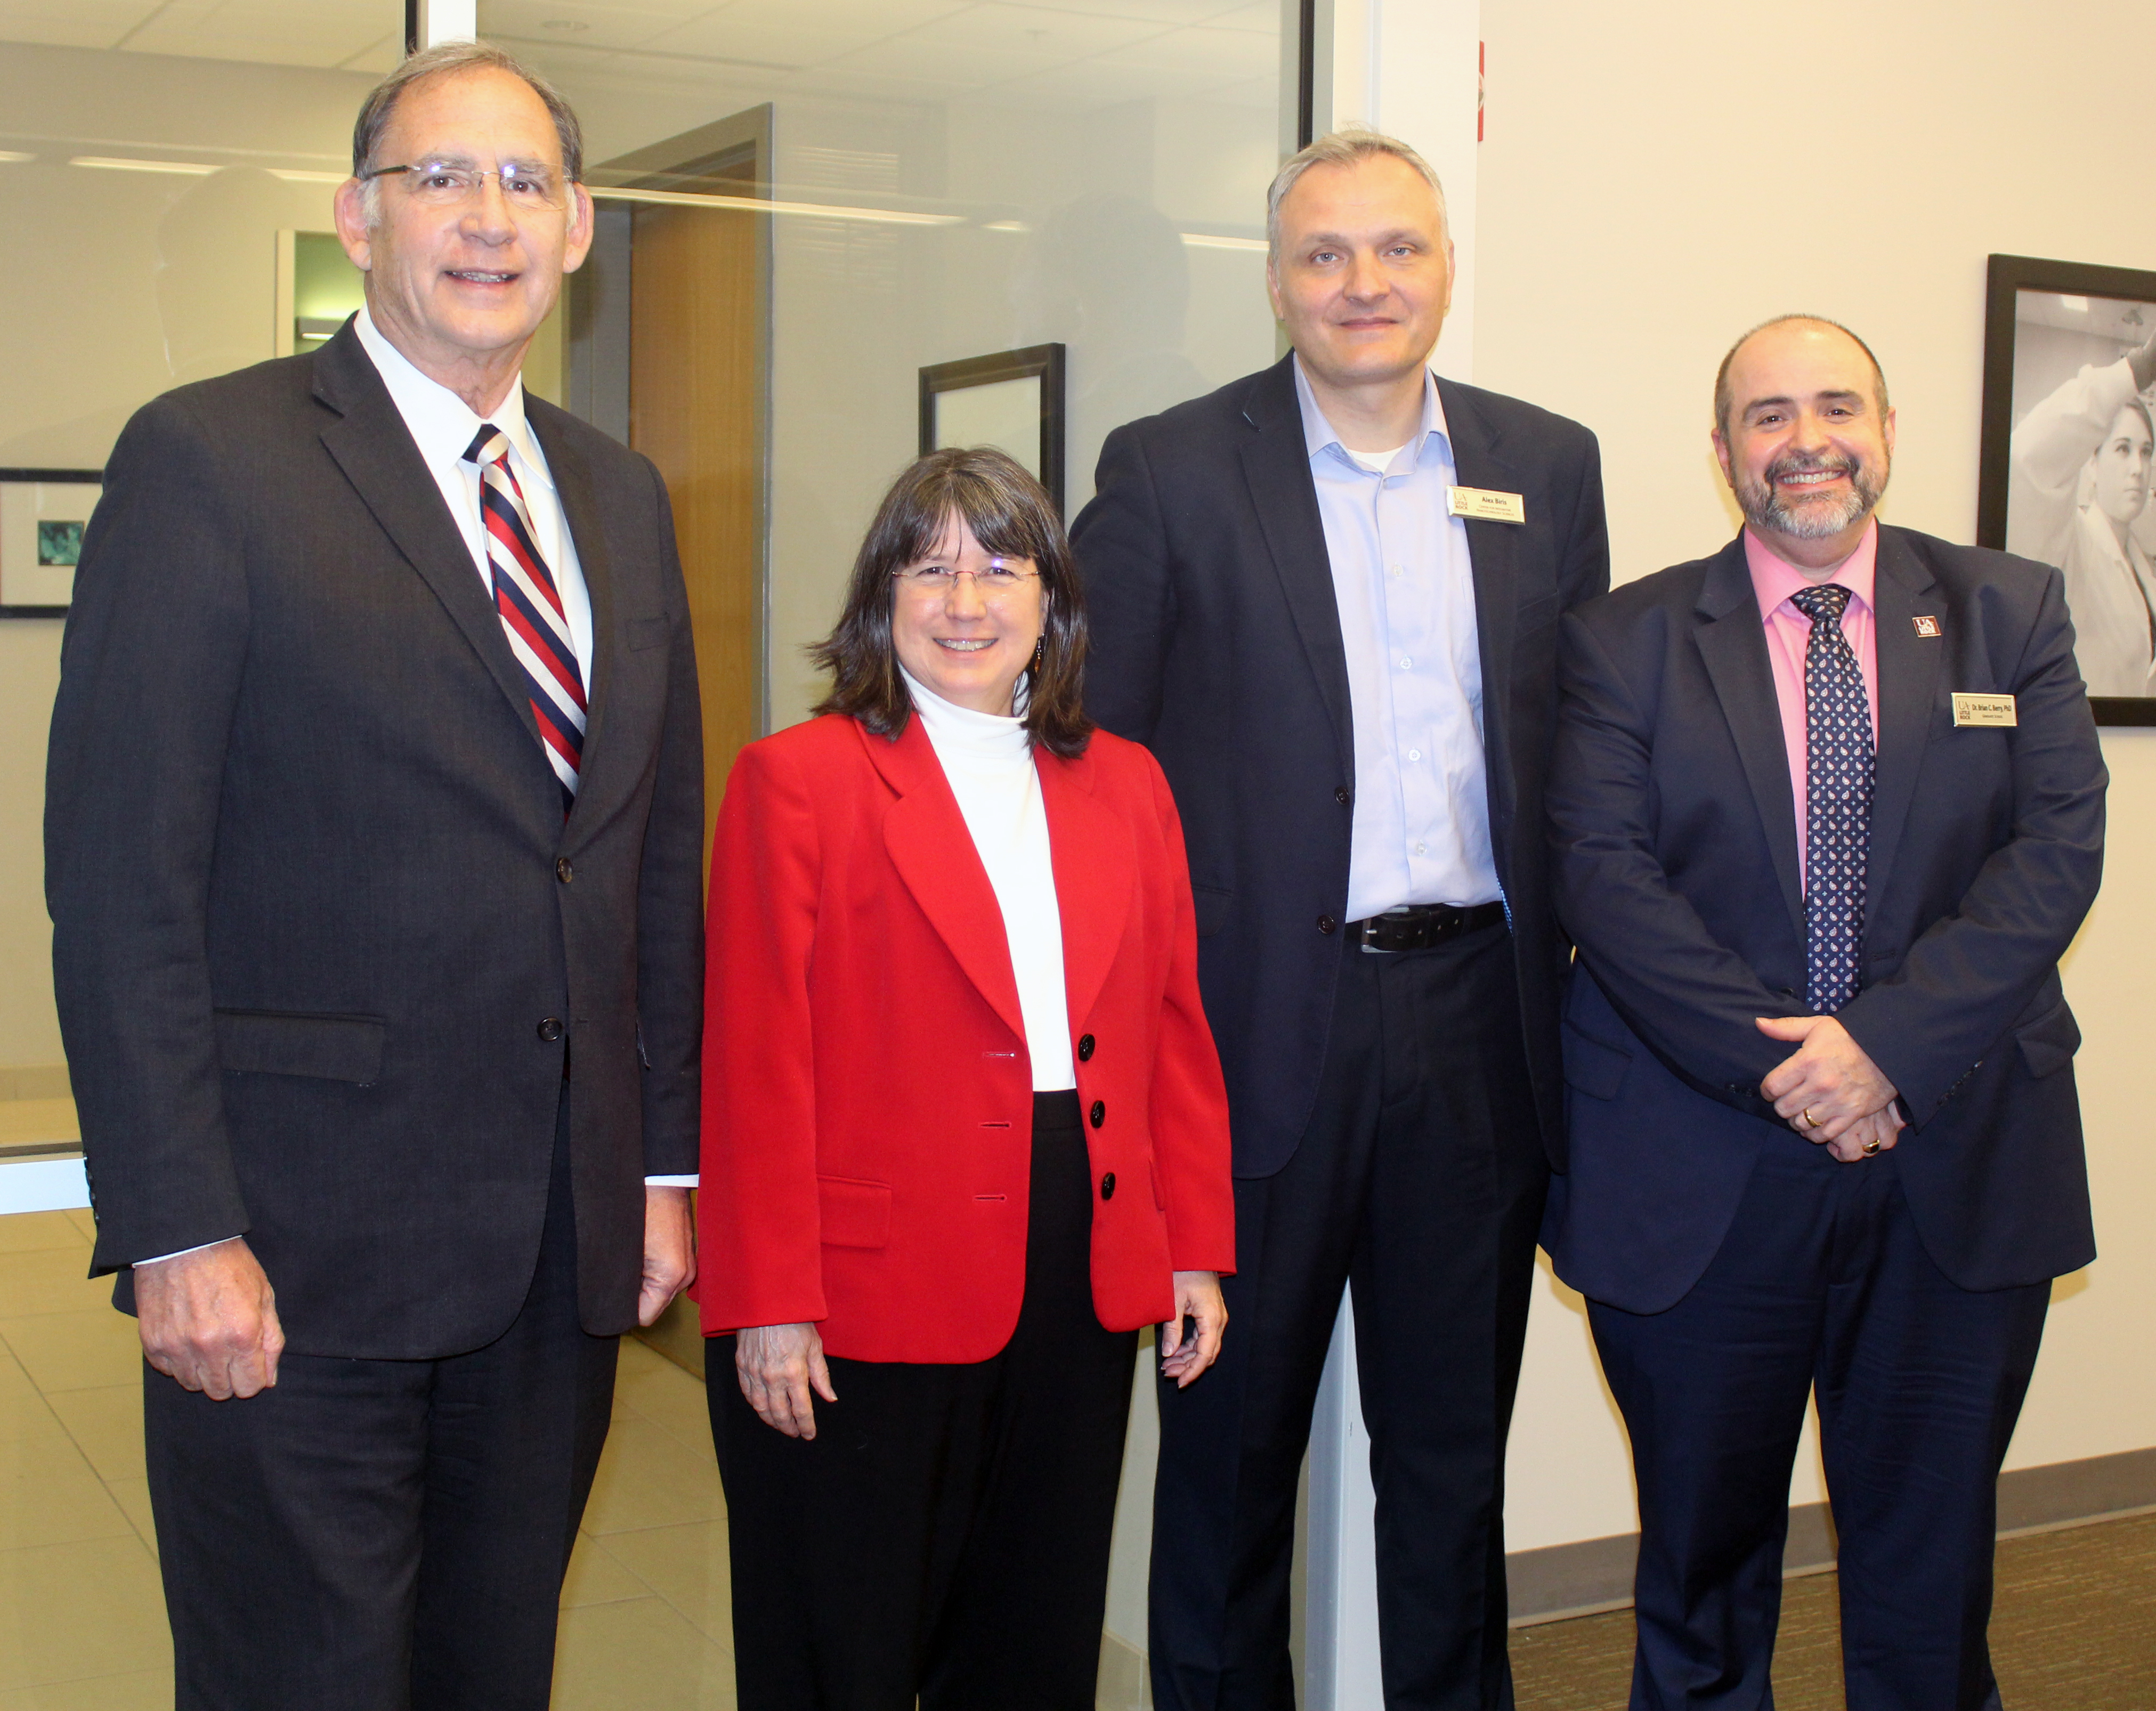 Sen. John Boozman (left) visits with Chancellor Christina Drale, Dr. Alex Biris, and Dr. Brian Berry during a research visit at UA Little Rock.